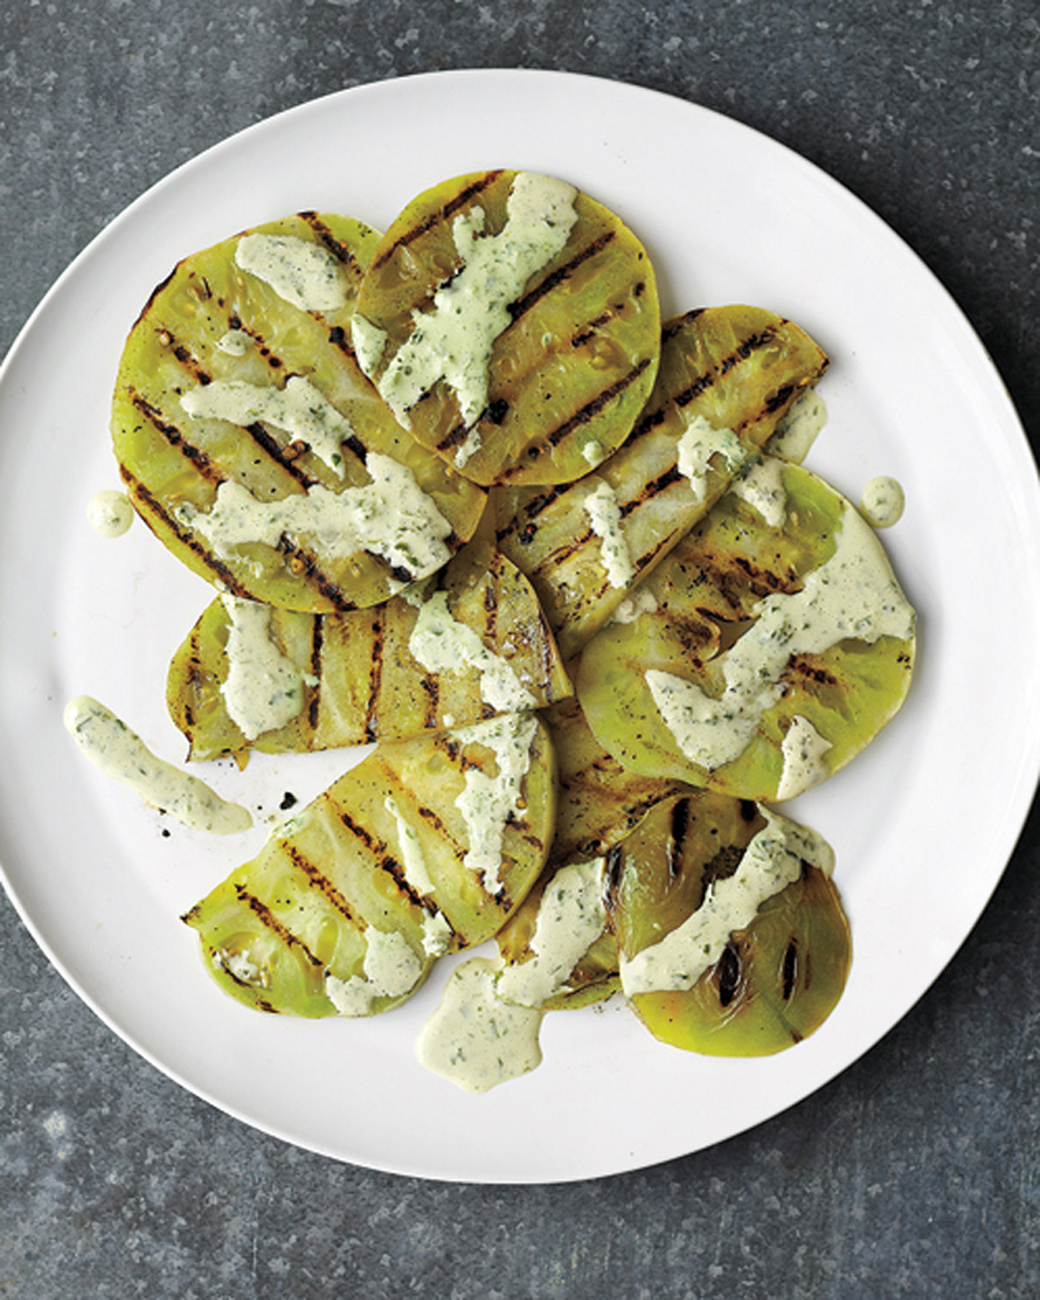 Grilled green tomato with creamy basil sauce